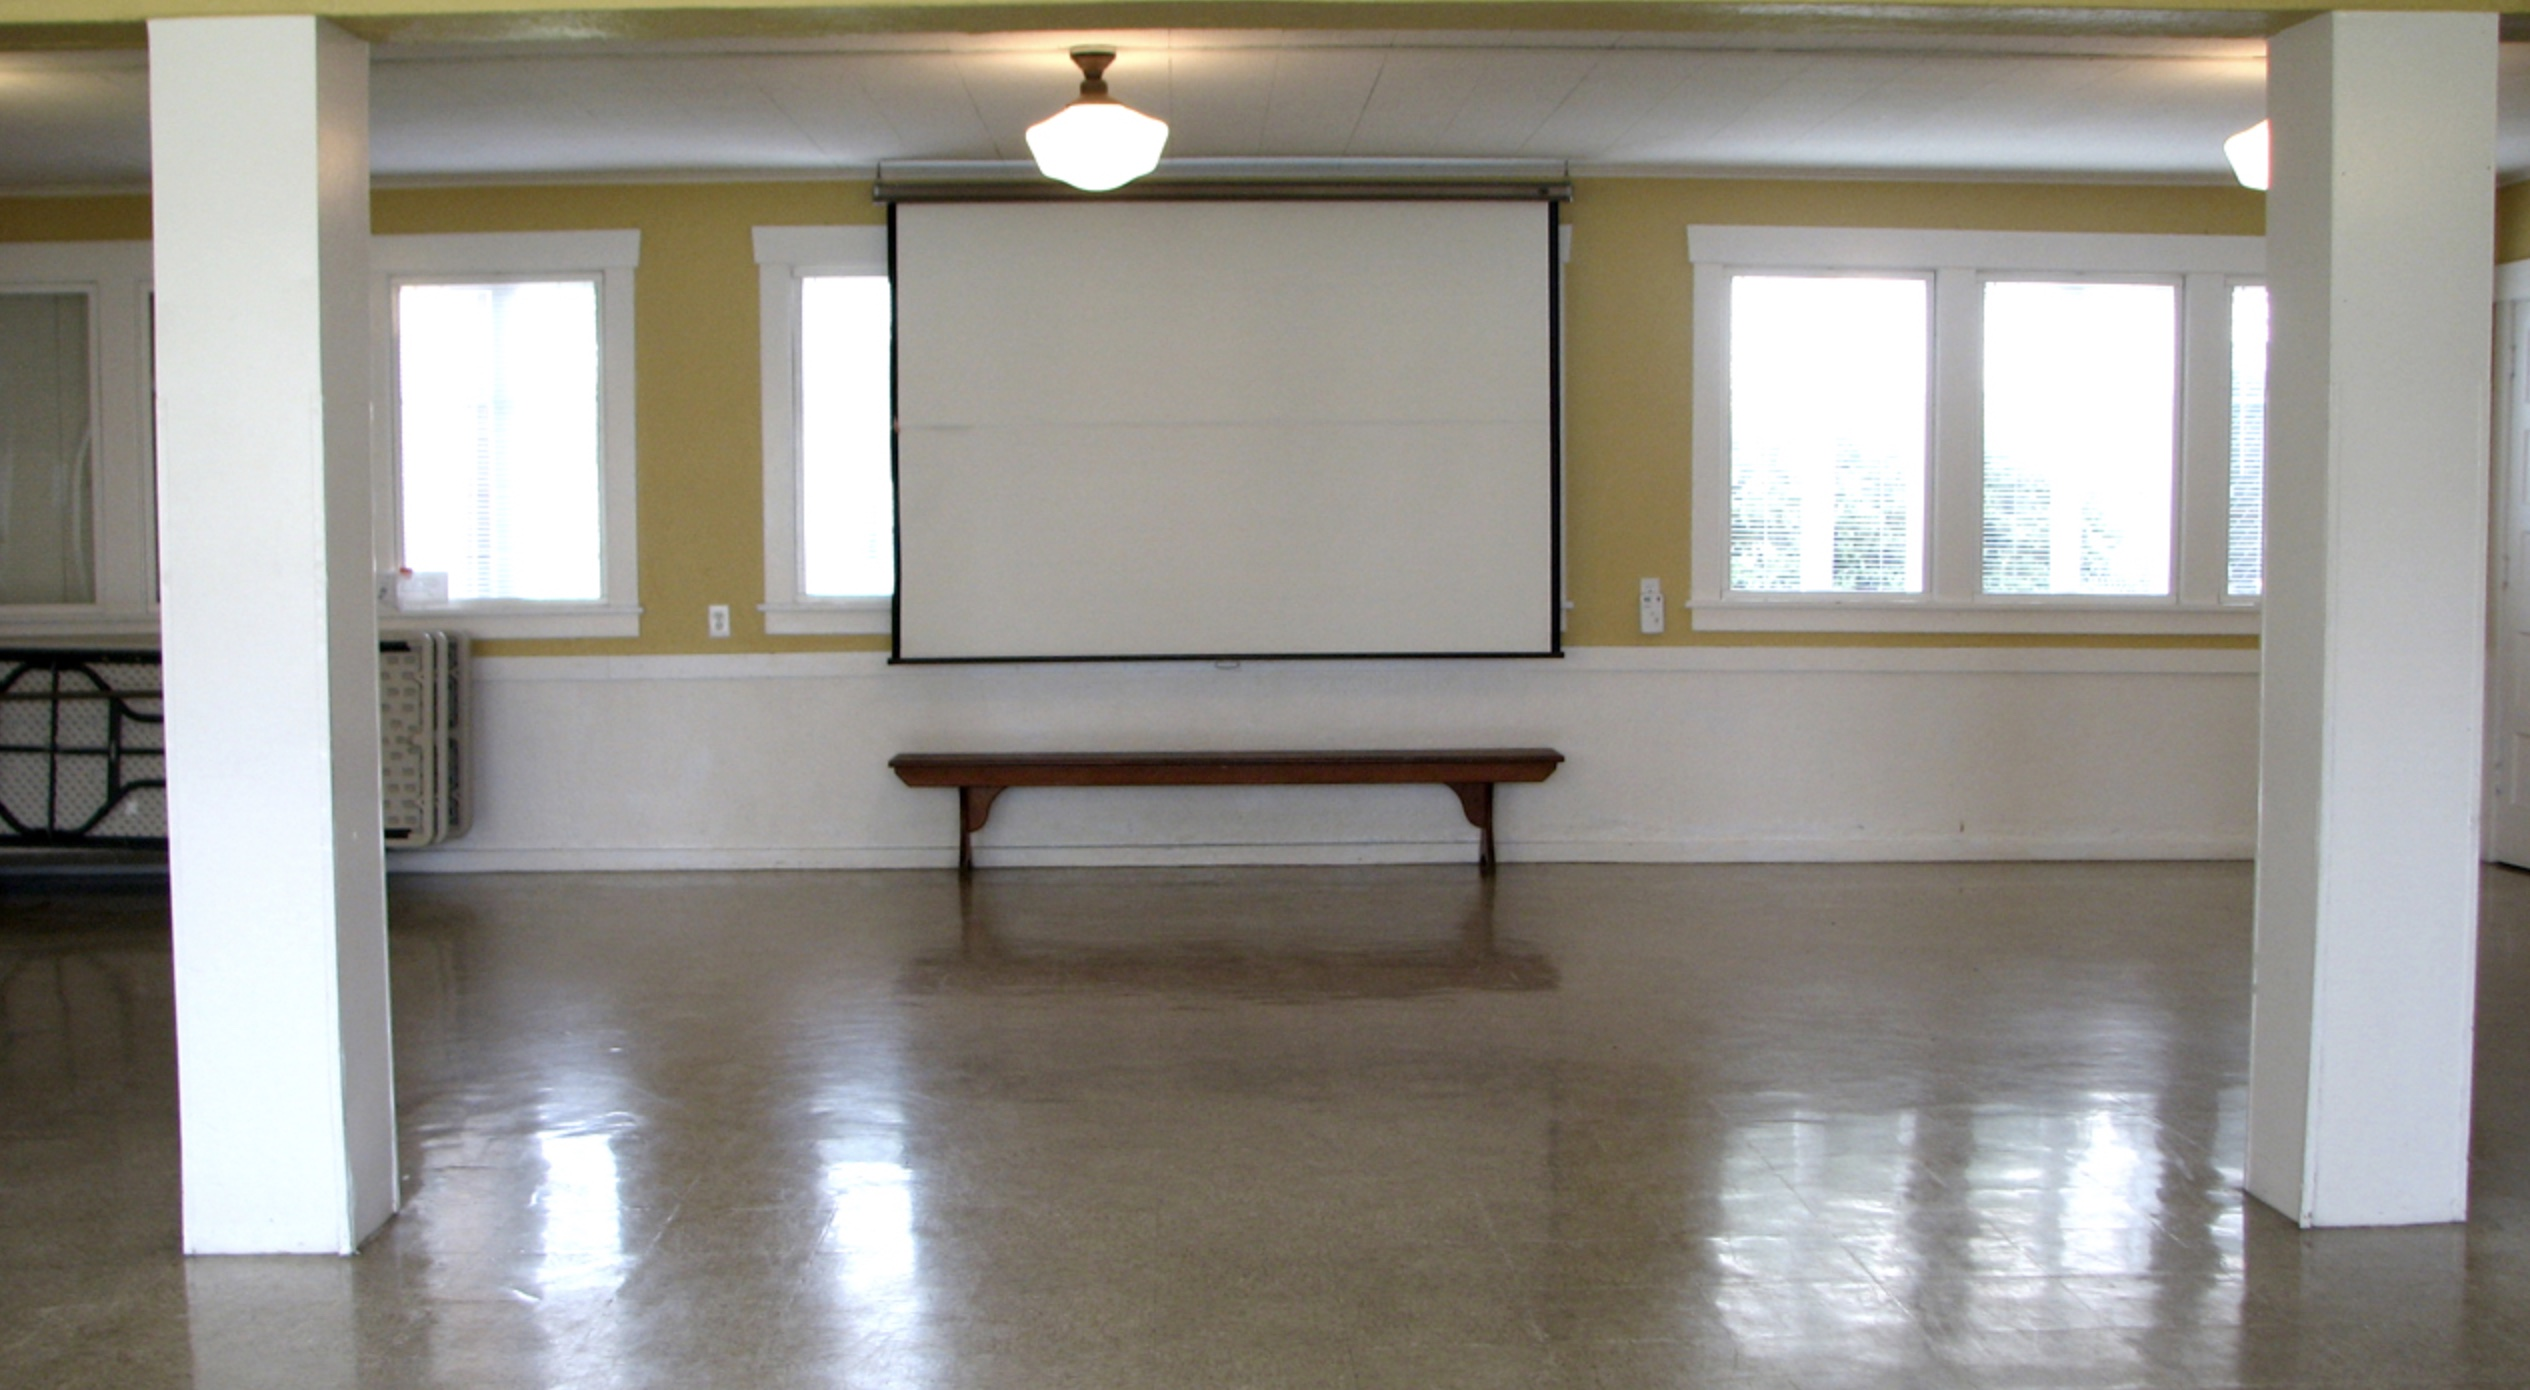 Projection screen in Lower Hall